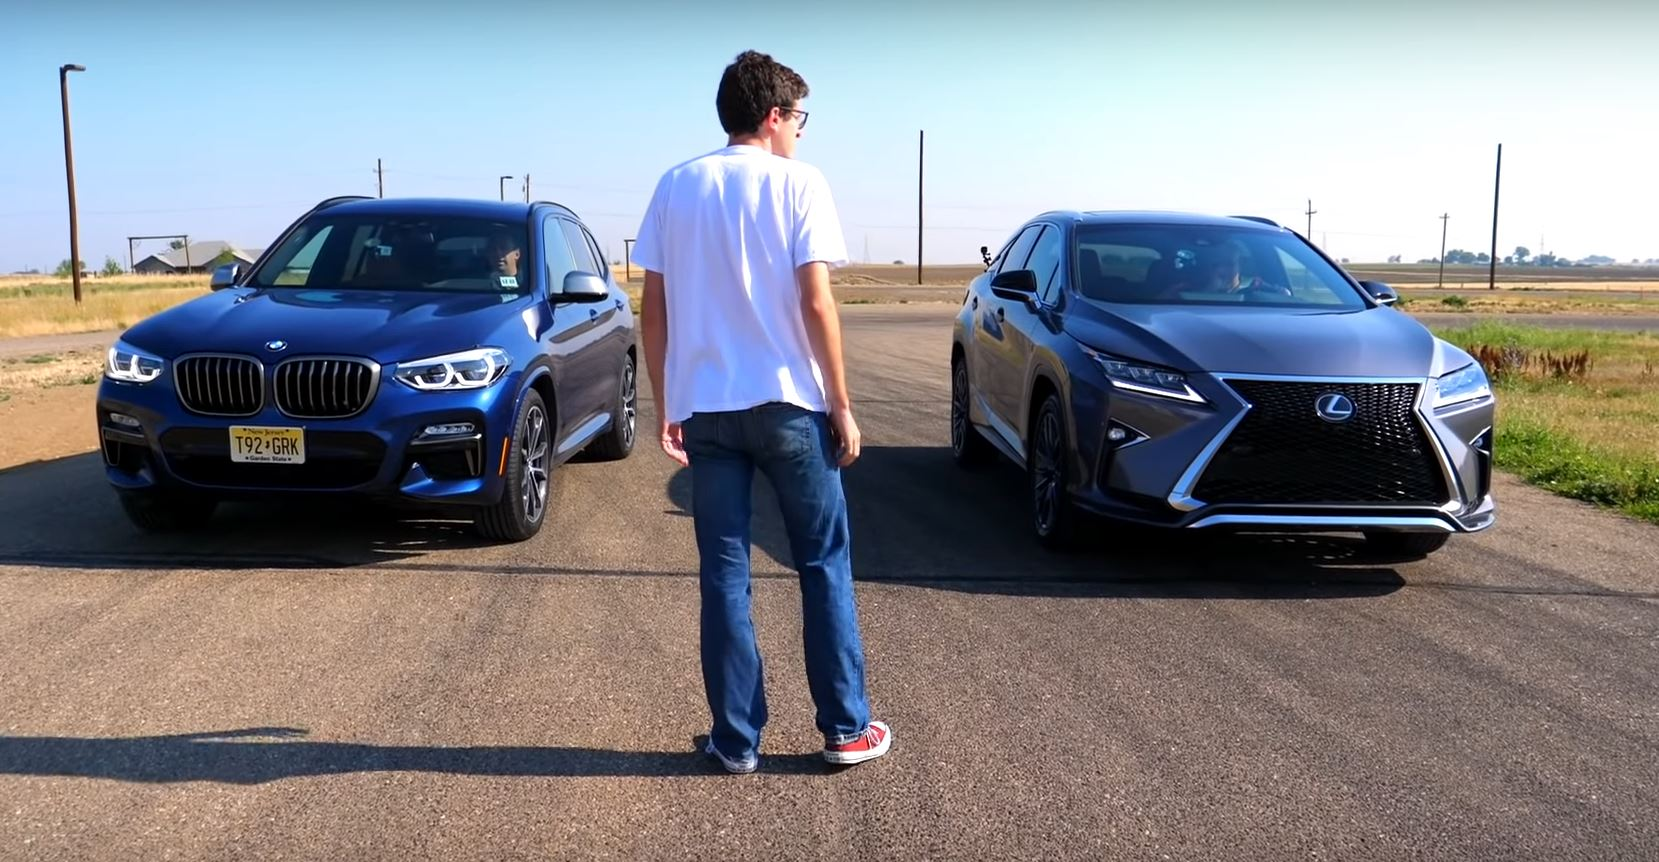 Bmw M3 M40i Vs Lexus Rx 350 Is Pointless Includes A Drag Race